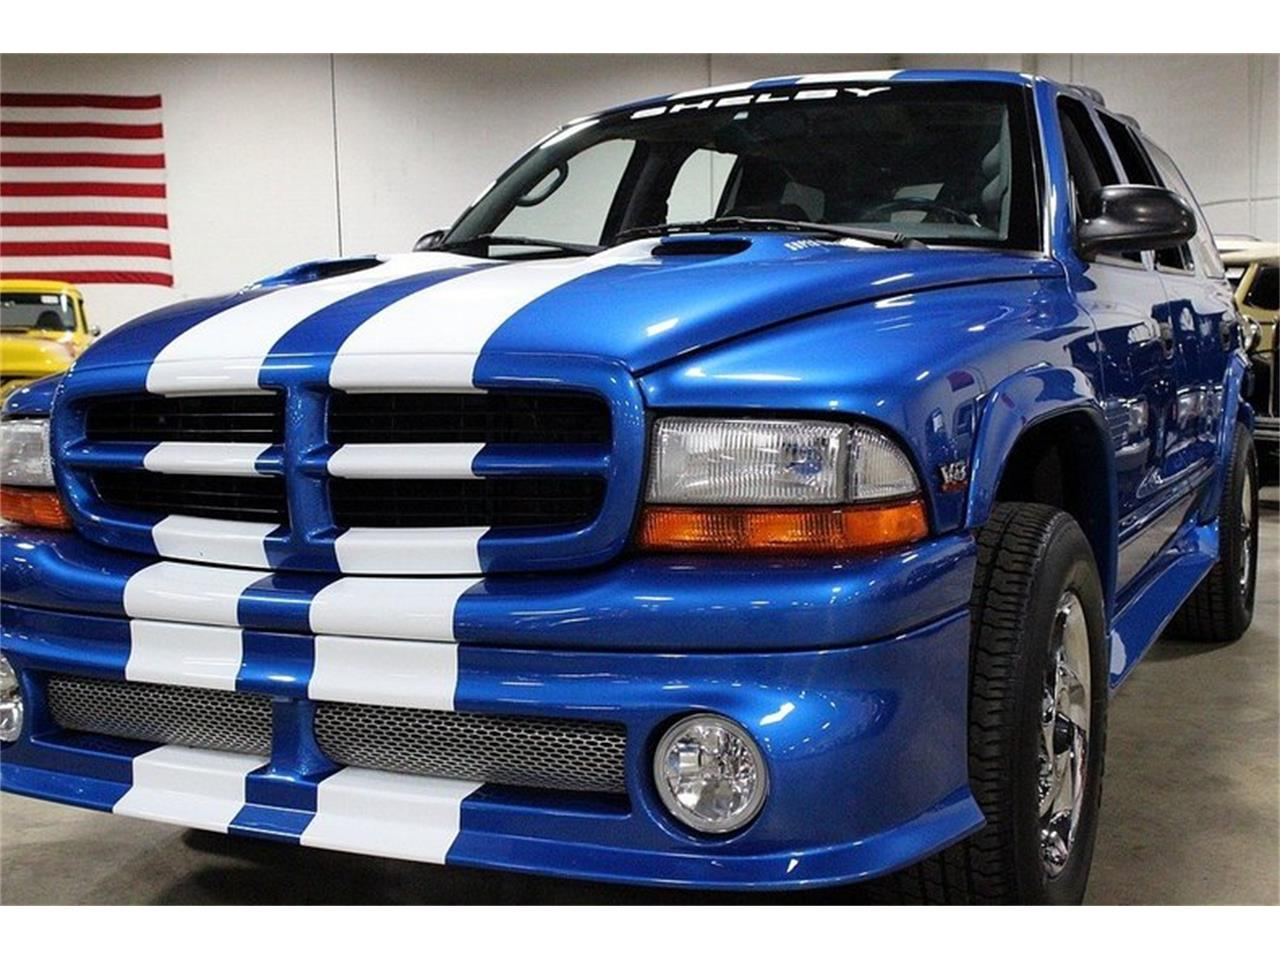 Large Picture of '99 Dodge Durango Shelby SP-360 located in Michigan - $31,900.00 Offered by GR Auto Gallery - MB1Y